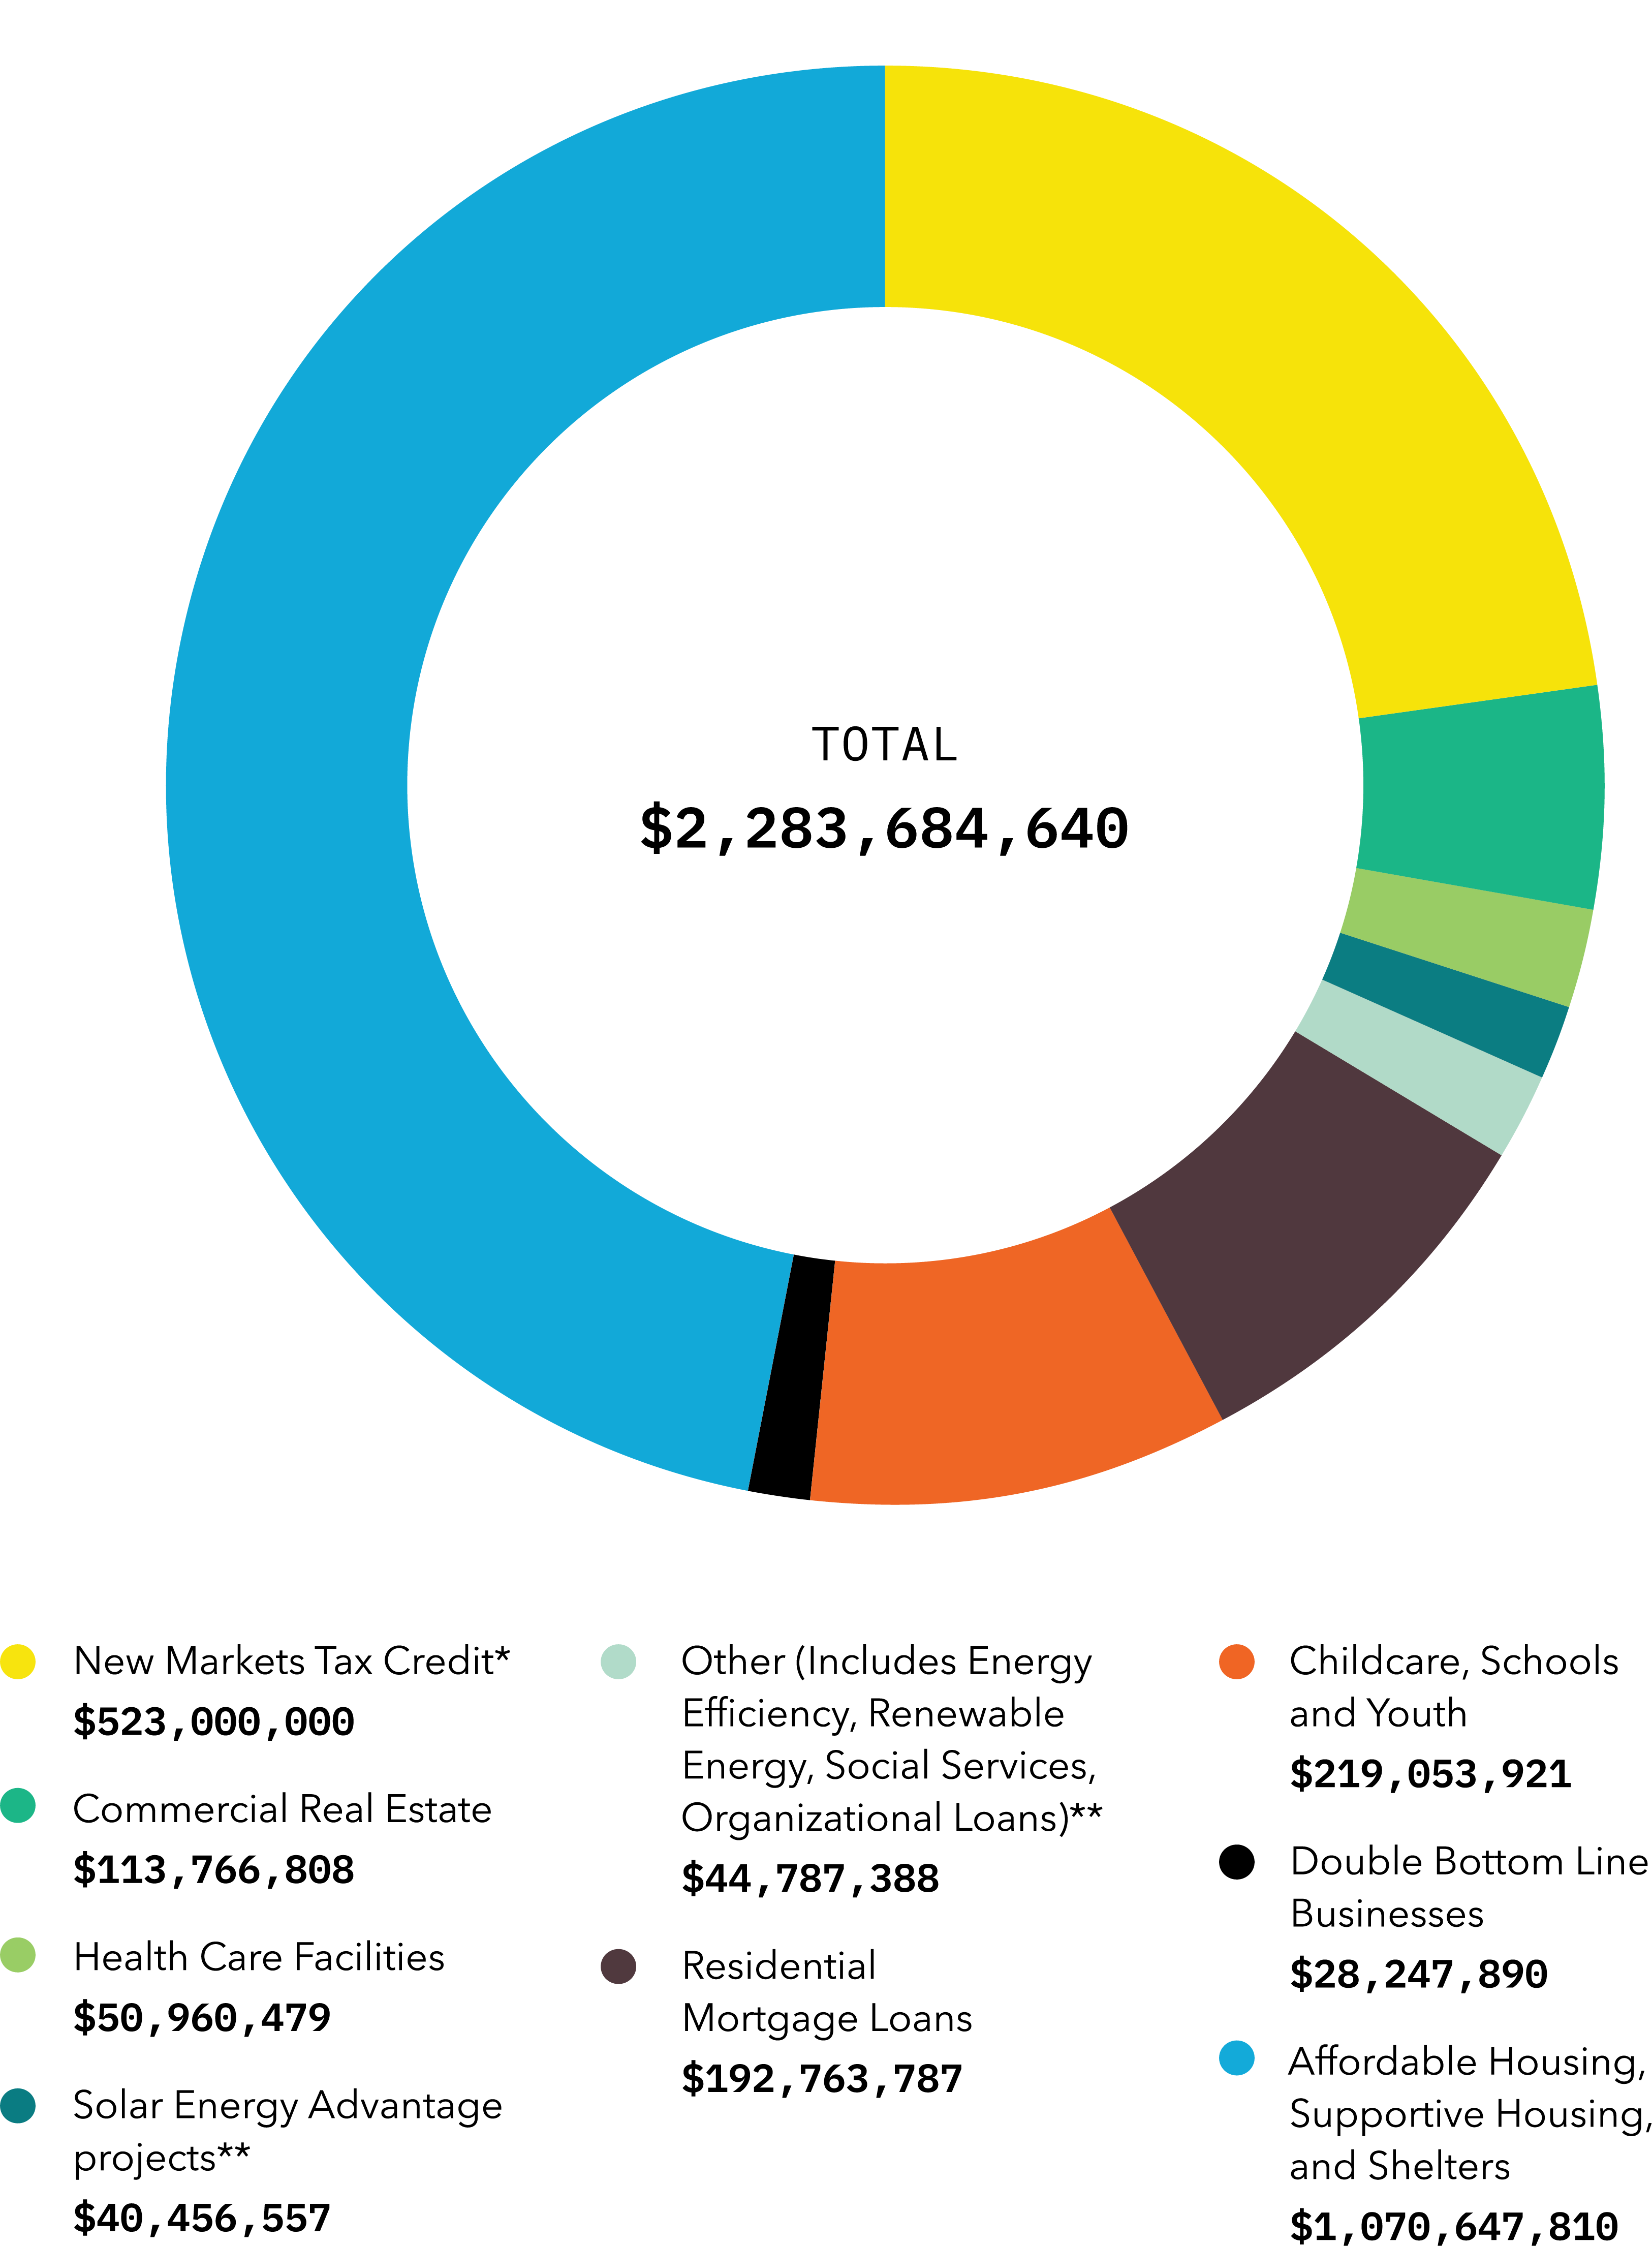 Circle graph showing cumulative investment by product type.